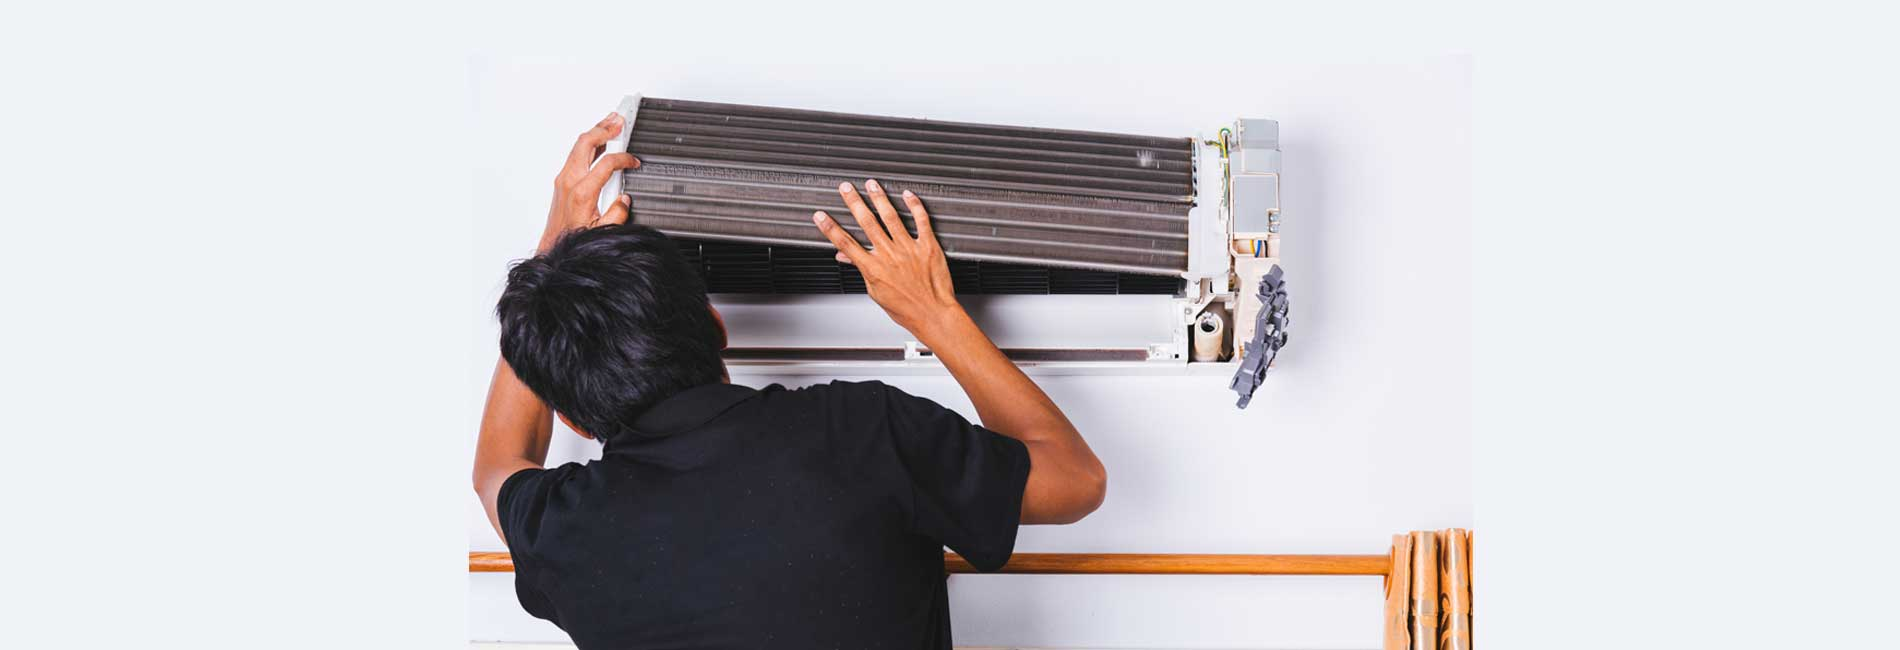 Air Conditioner Repair in Gopalapuram